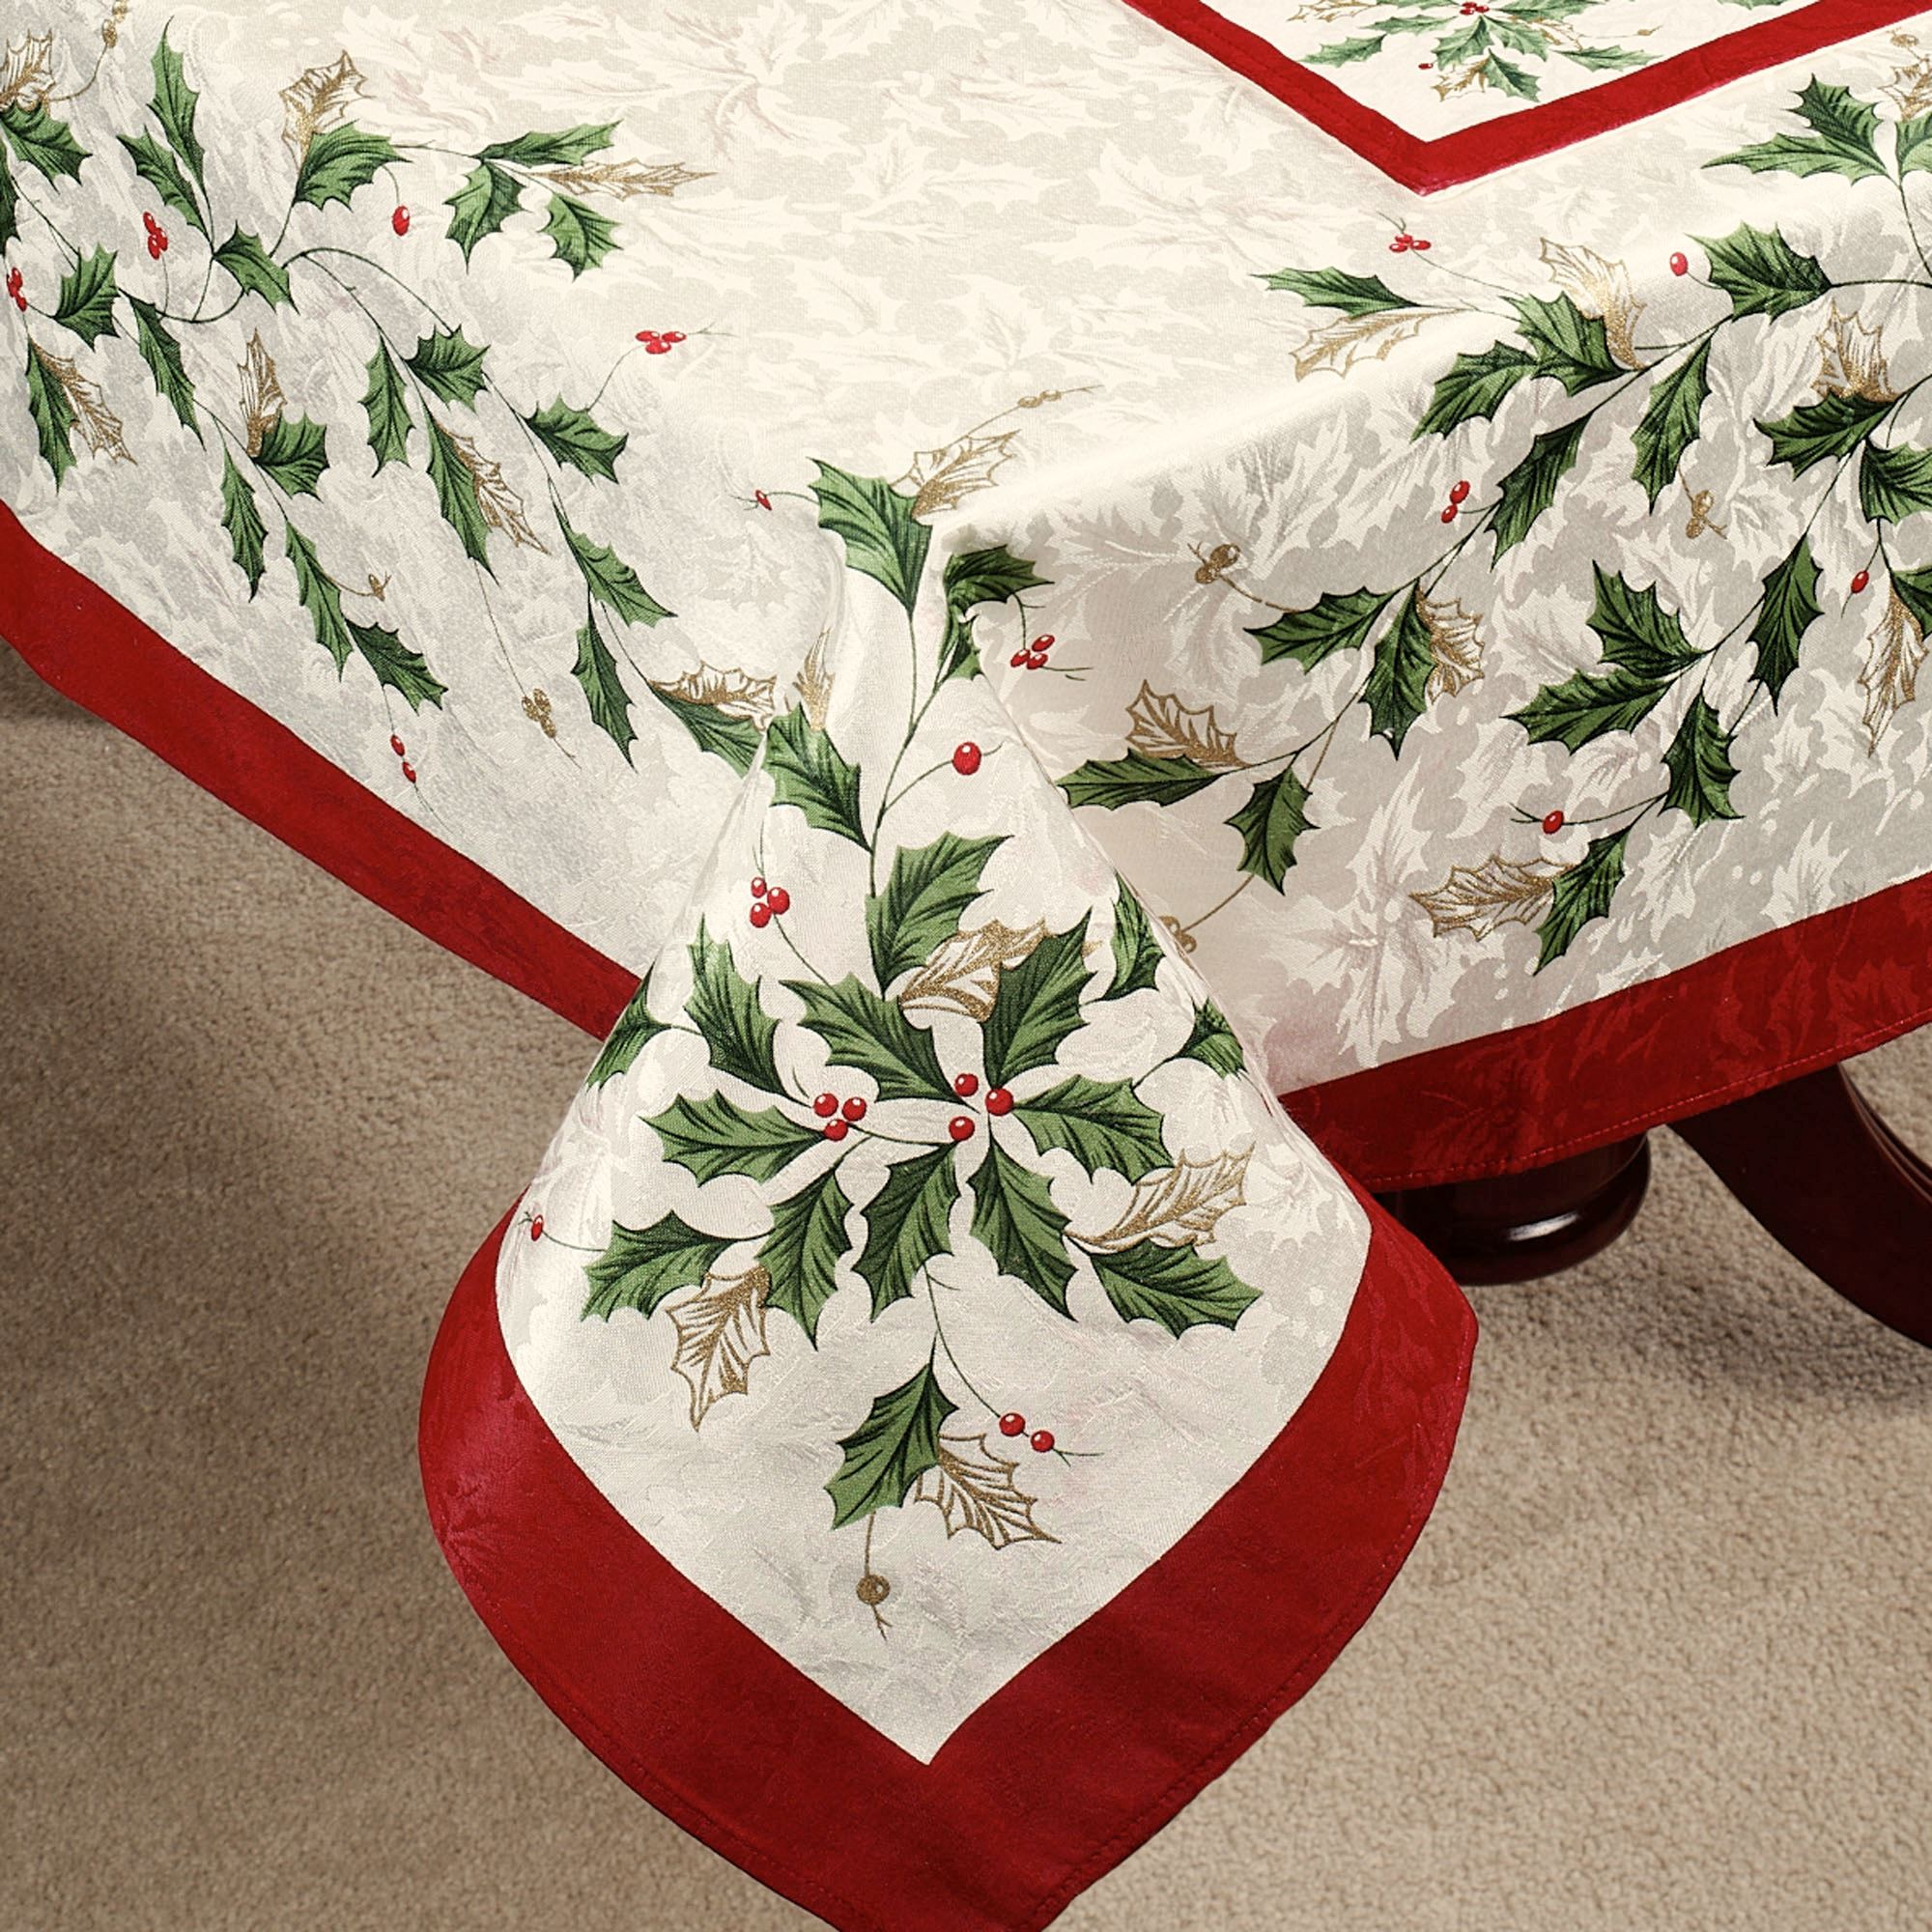 Christmas Tablecloths Australia Lenox Christmas Tablecloth 97x64 8 Napkins 18 Sq Ivory W